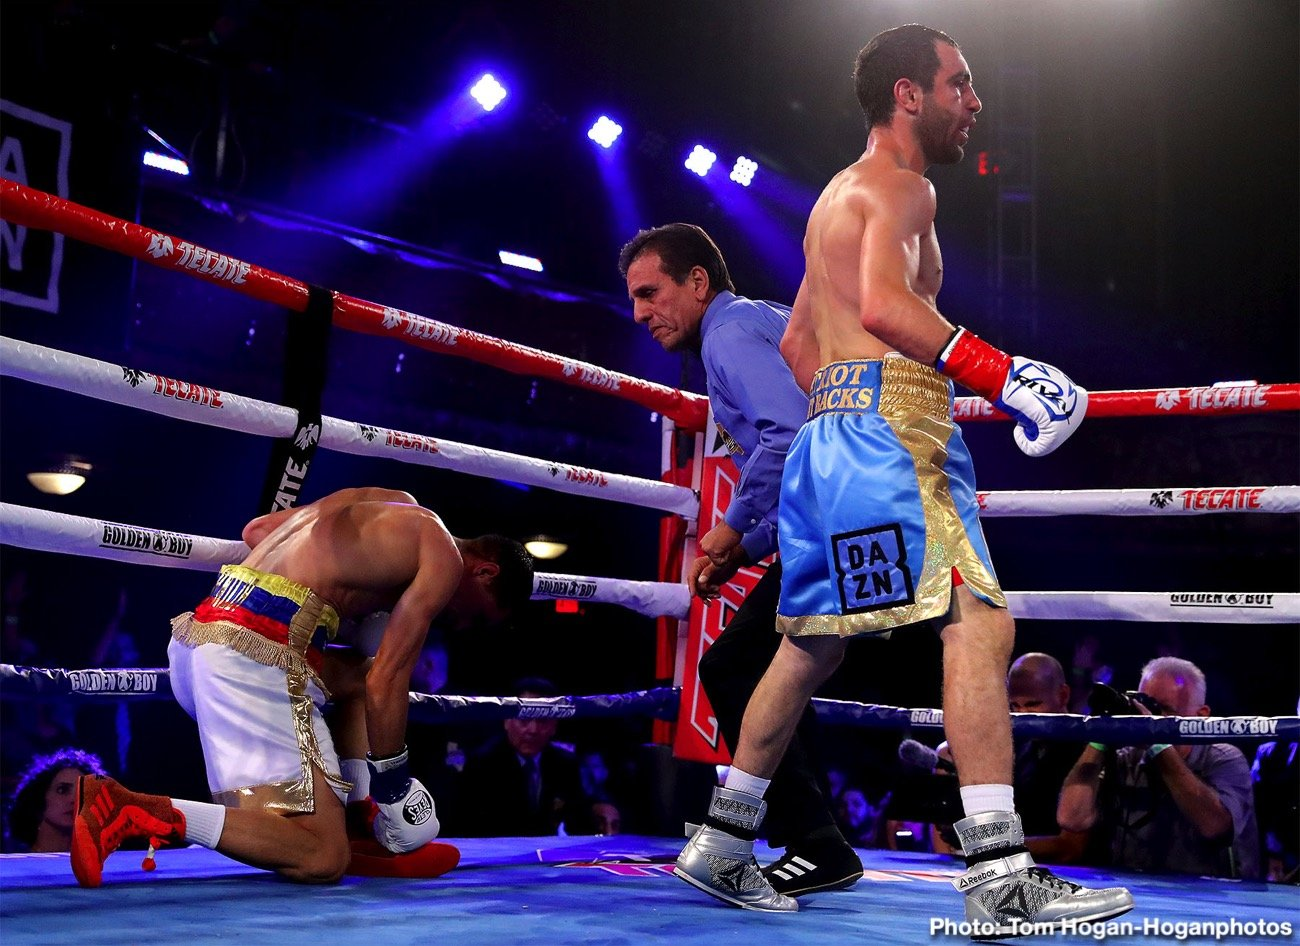 Azat Hovhannisyan, Franklin Manzanilla - Explosive Armenian contender Azat 'Crazy A' Hovhannisyan (18-3, 15 KOs) earned a shot at the WBA Super Bantamweight World Title by defeating Franklin Manzanilla (18-6, 17 KOs) of Caracas, Venezuela via knockout at 2:58 of the fourth round of a scheduled 12-round eliminator fight in the main event of the Sept. 5 edition of Golden Boy DAZN Thursday Night Fights at the Belasco Theater in Los Angeles. The event was streamed live on RingTV.com and on Facebook Watch via the Golden Boy Fight Night Page. The series is also available on regional sports networks around the nation.